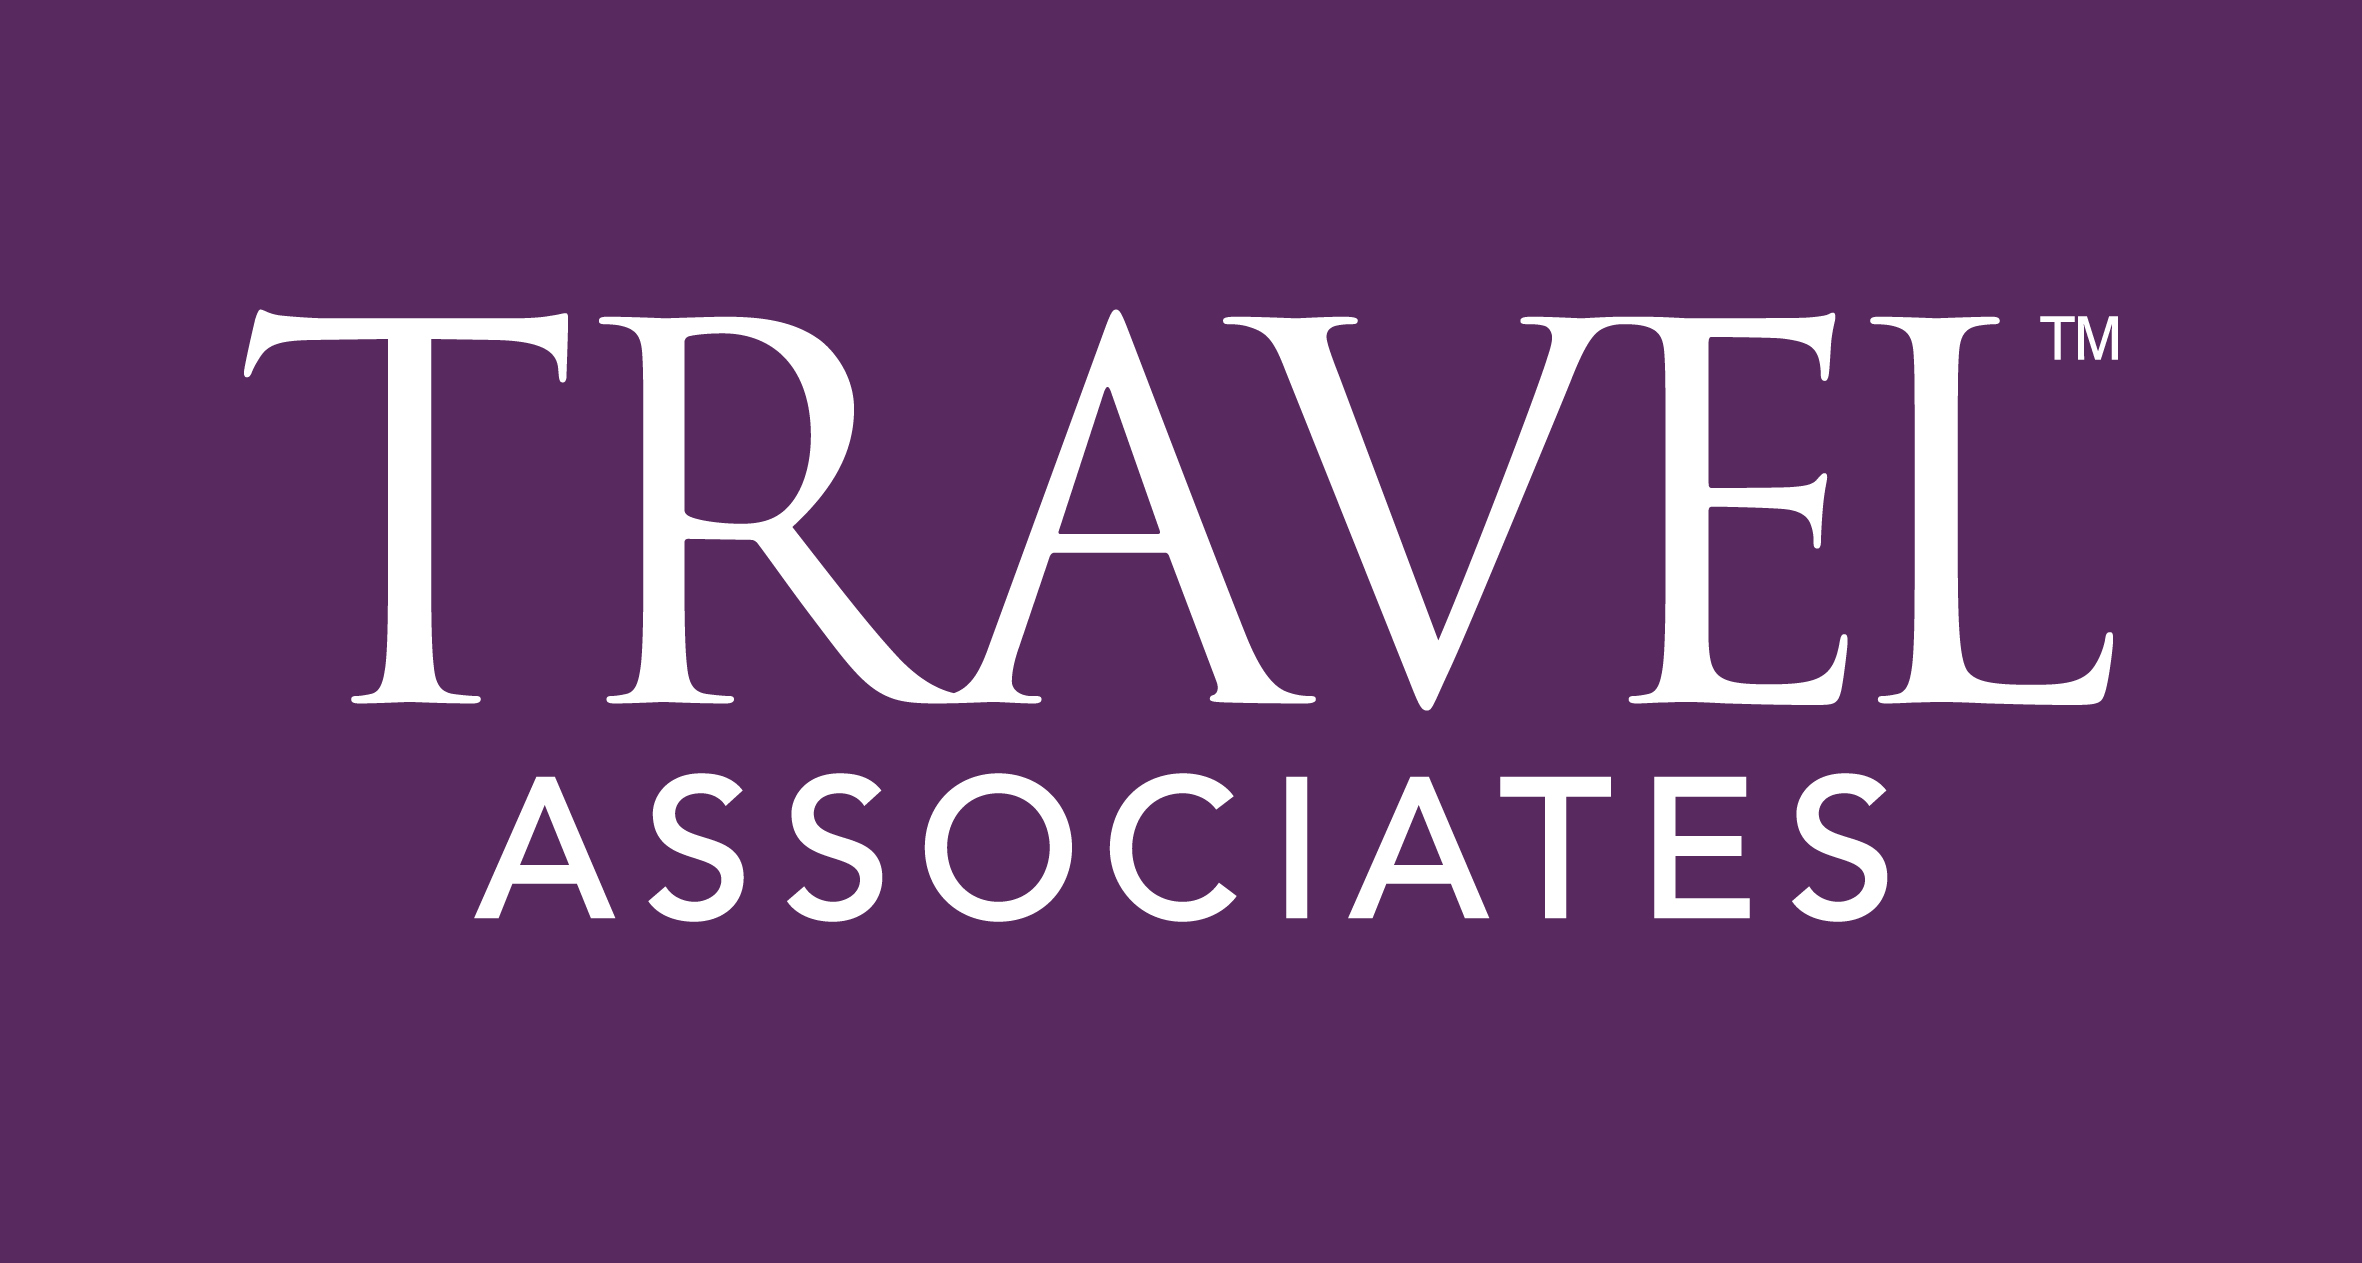 ELLIOTT & TURNER TRAVEL ASSOCIATES Logo